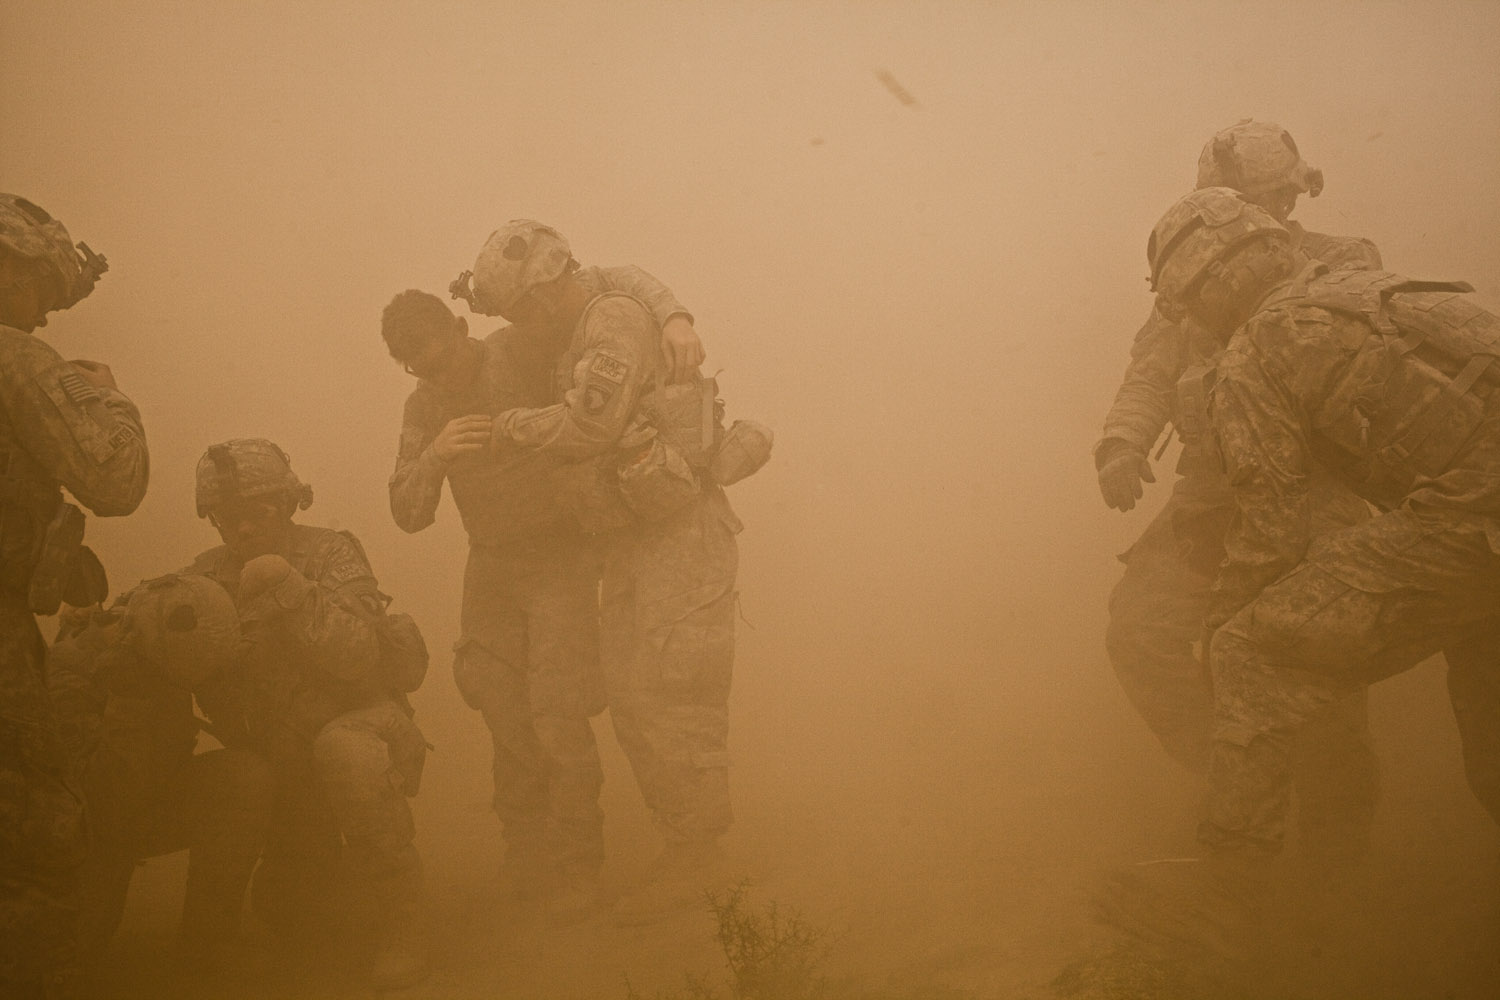 U.S. infantry soldiers shield themselves from dust and debris as a medevac helicopter lands to evacuate soldiers injured from two IED attacks during  Operation Clarksville  in Kandahar Province, Afghanistan. Oct. 9, 2010.